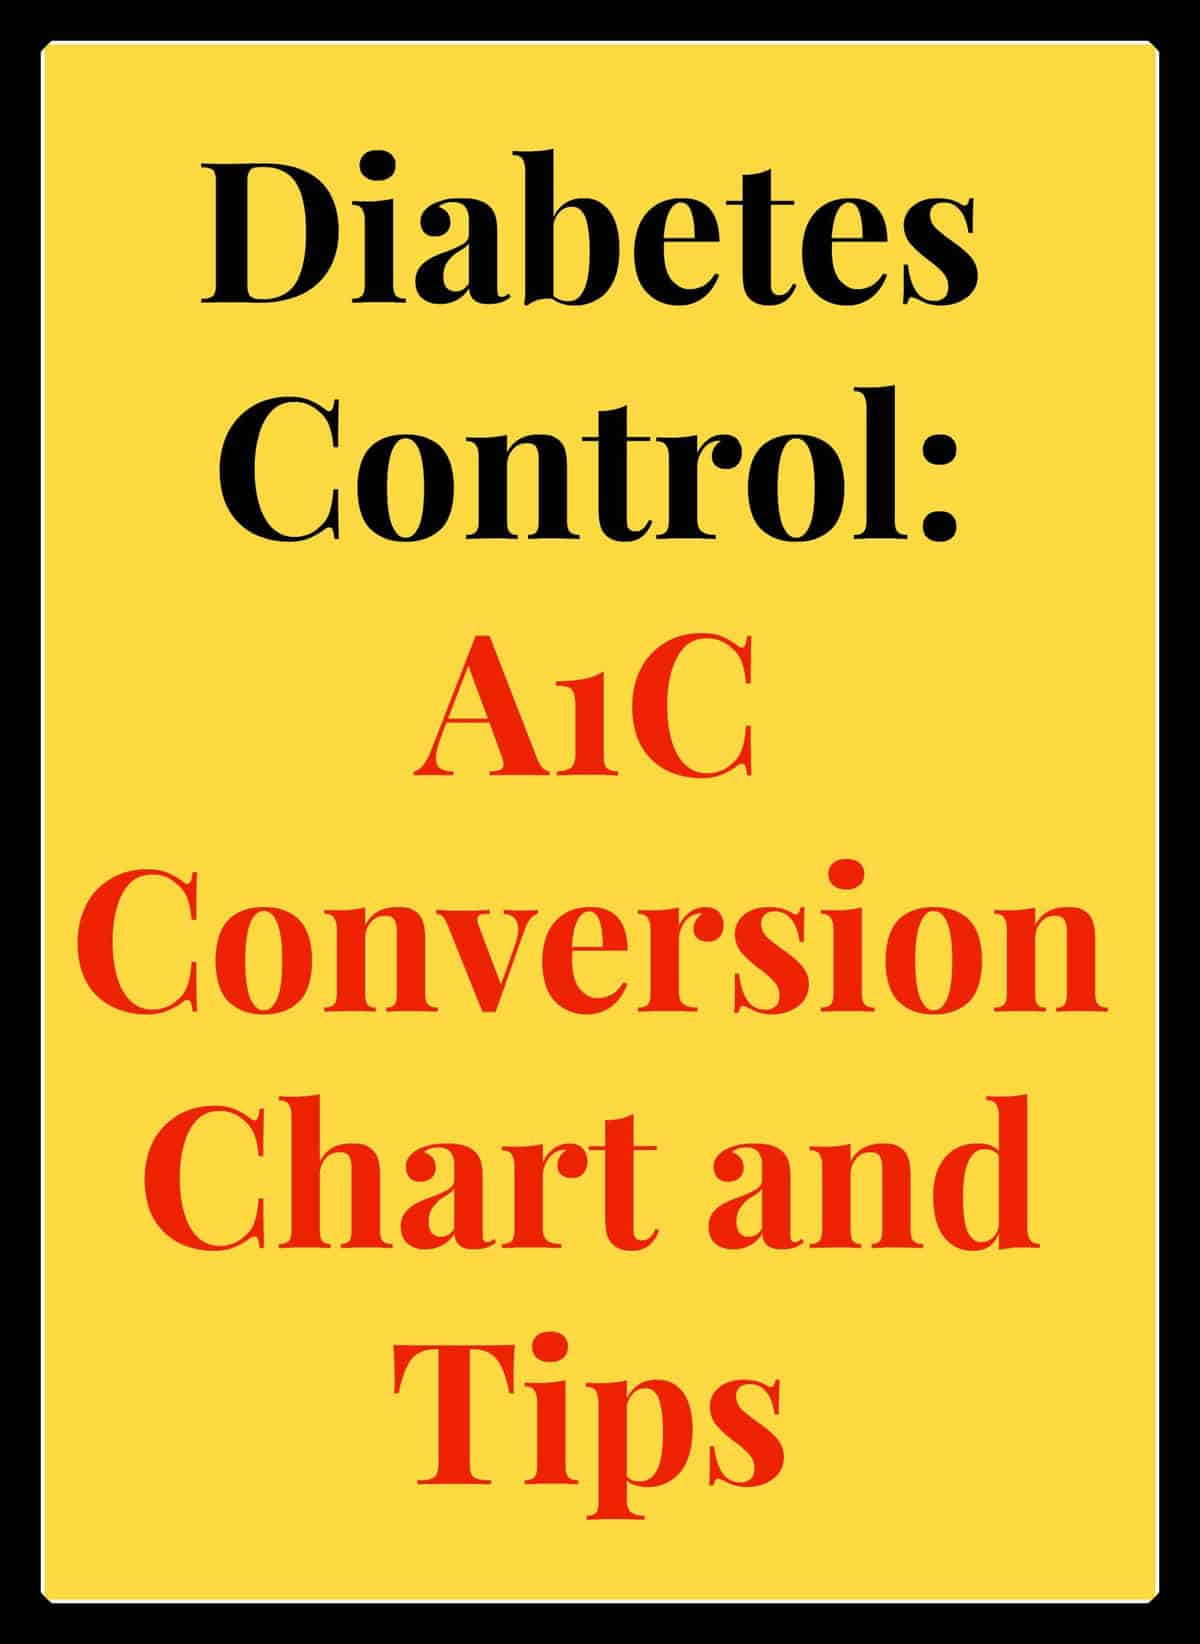 Diabetes Control A1c Conversion Chart Tips Easyhealth Living